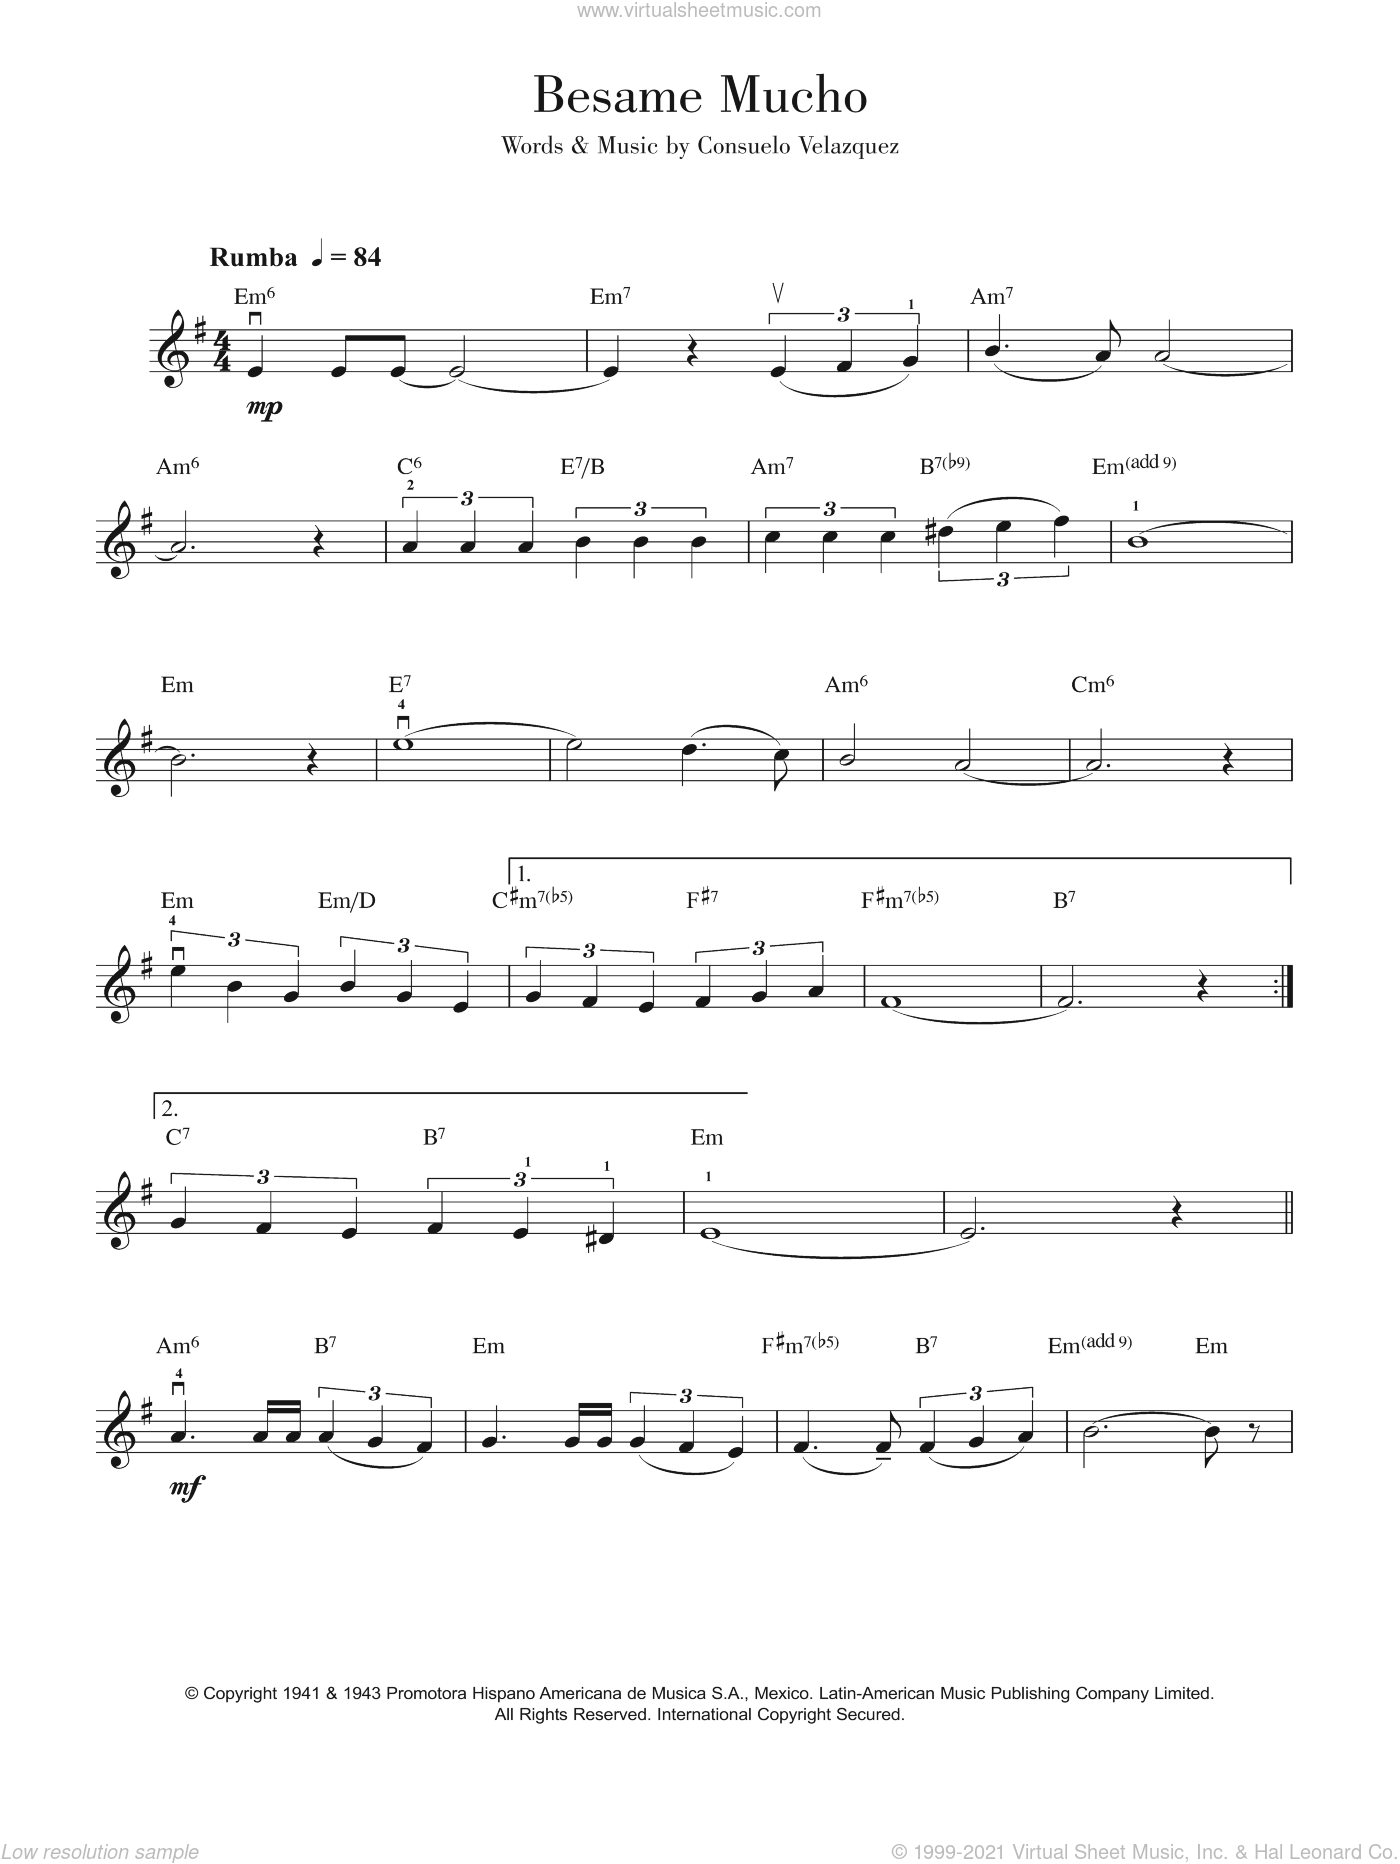 Besame Mucho (Kiss Me Much) sheet music for violin solo by Consuelo Velazquez, Diana Krall and Sunny Skylar, intermediate skill level